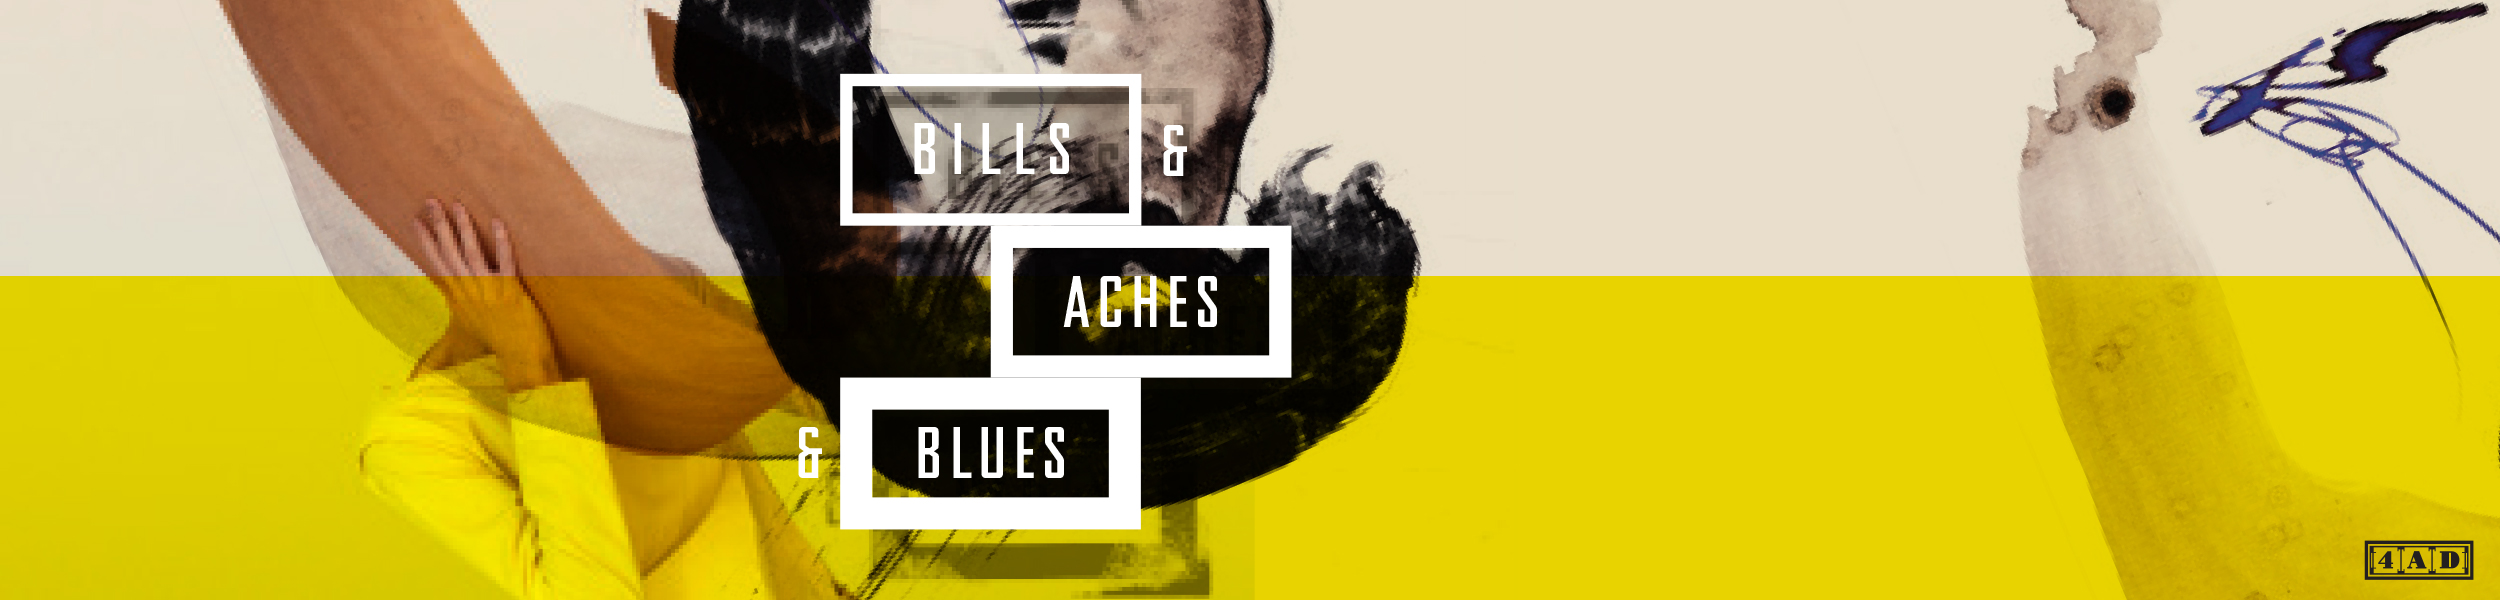 4AD - Five New 'Bills & Aches & Blues' Tracks Out Now